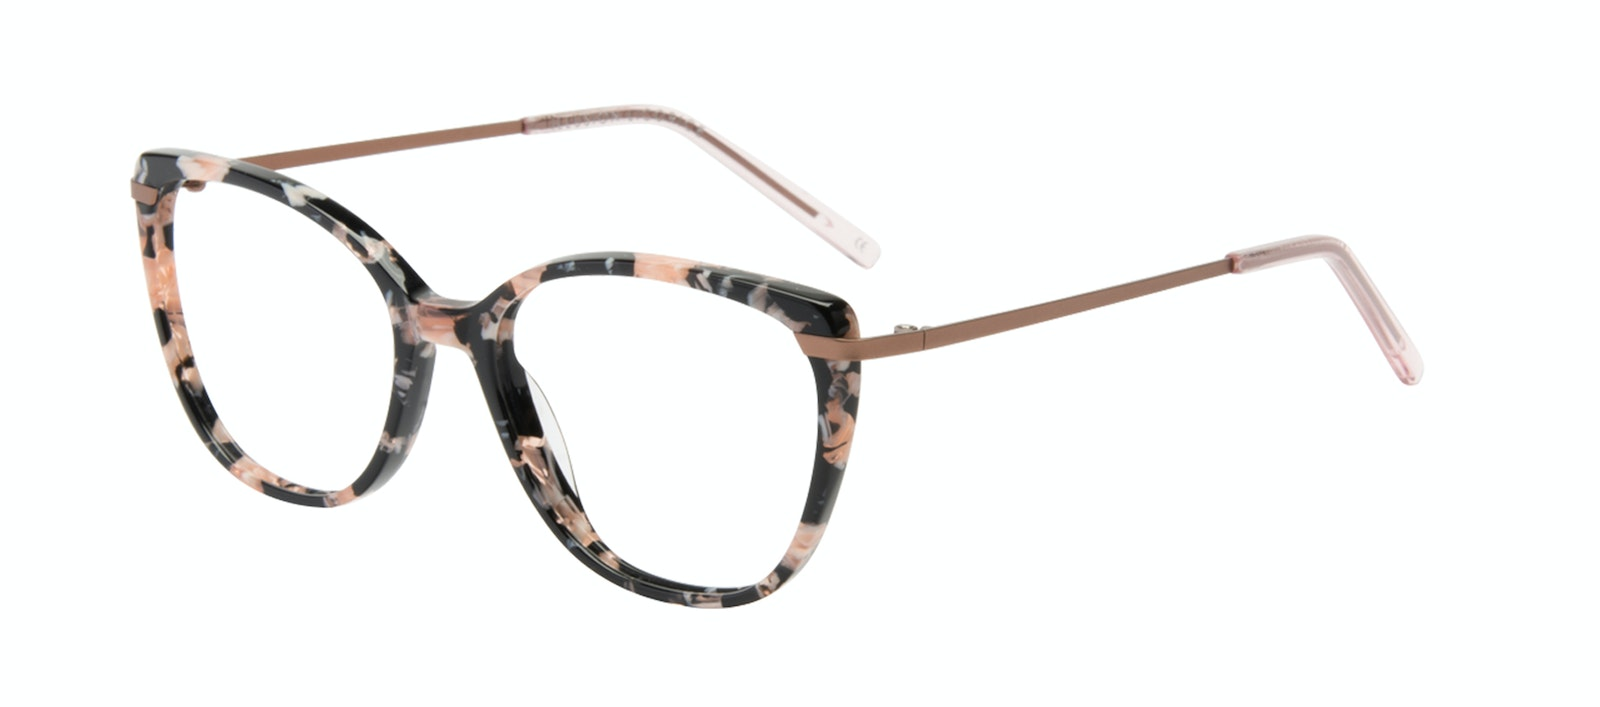 Affordable Fashion Glasses Cat Eye Rectangle Square Eyeglasses Women Illusion Licorice Tilt